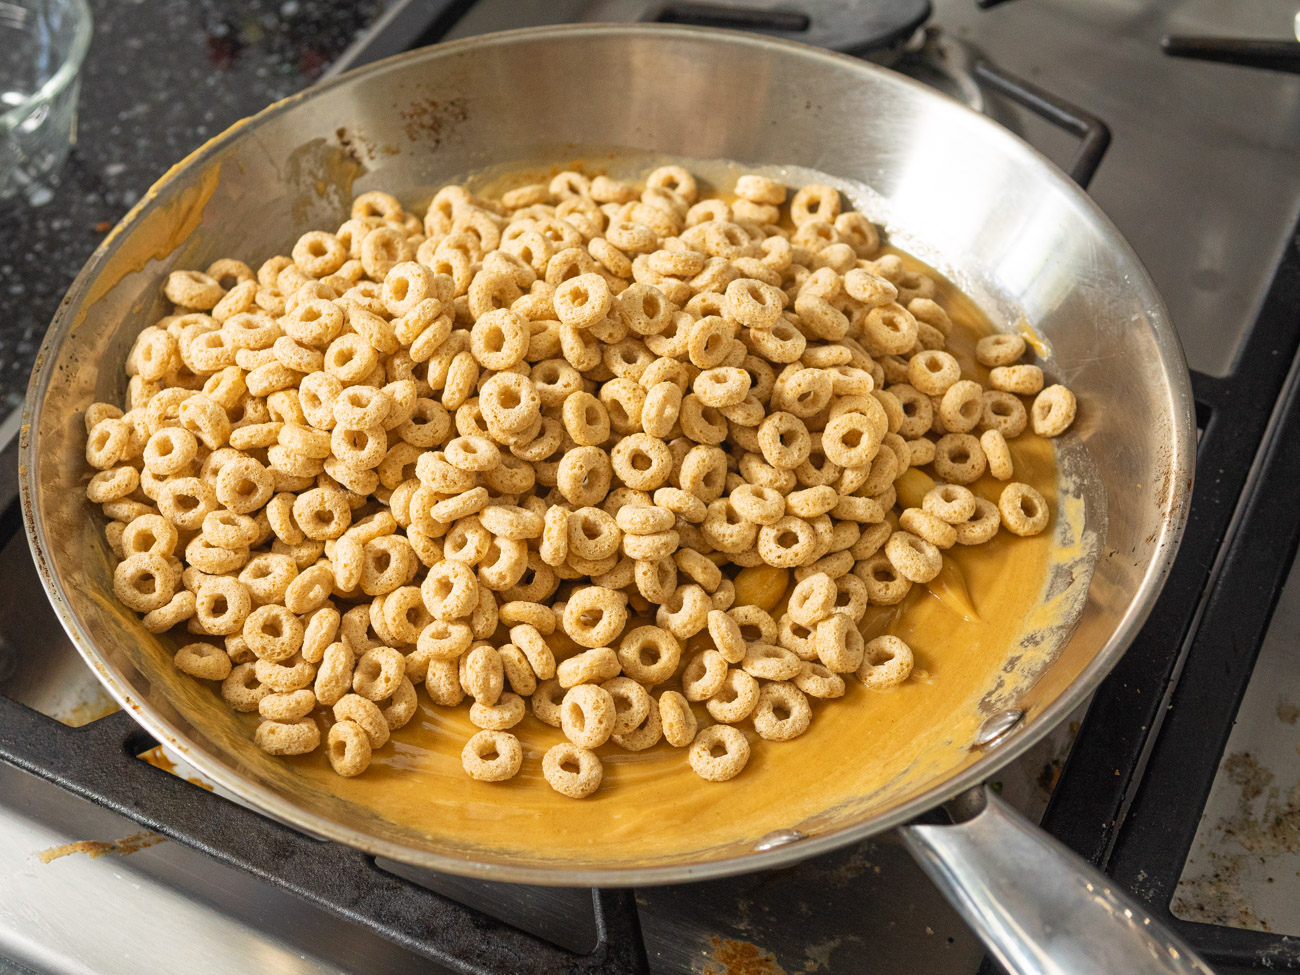 Remove from the heat and stir in the Cheerios and peanuts.